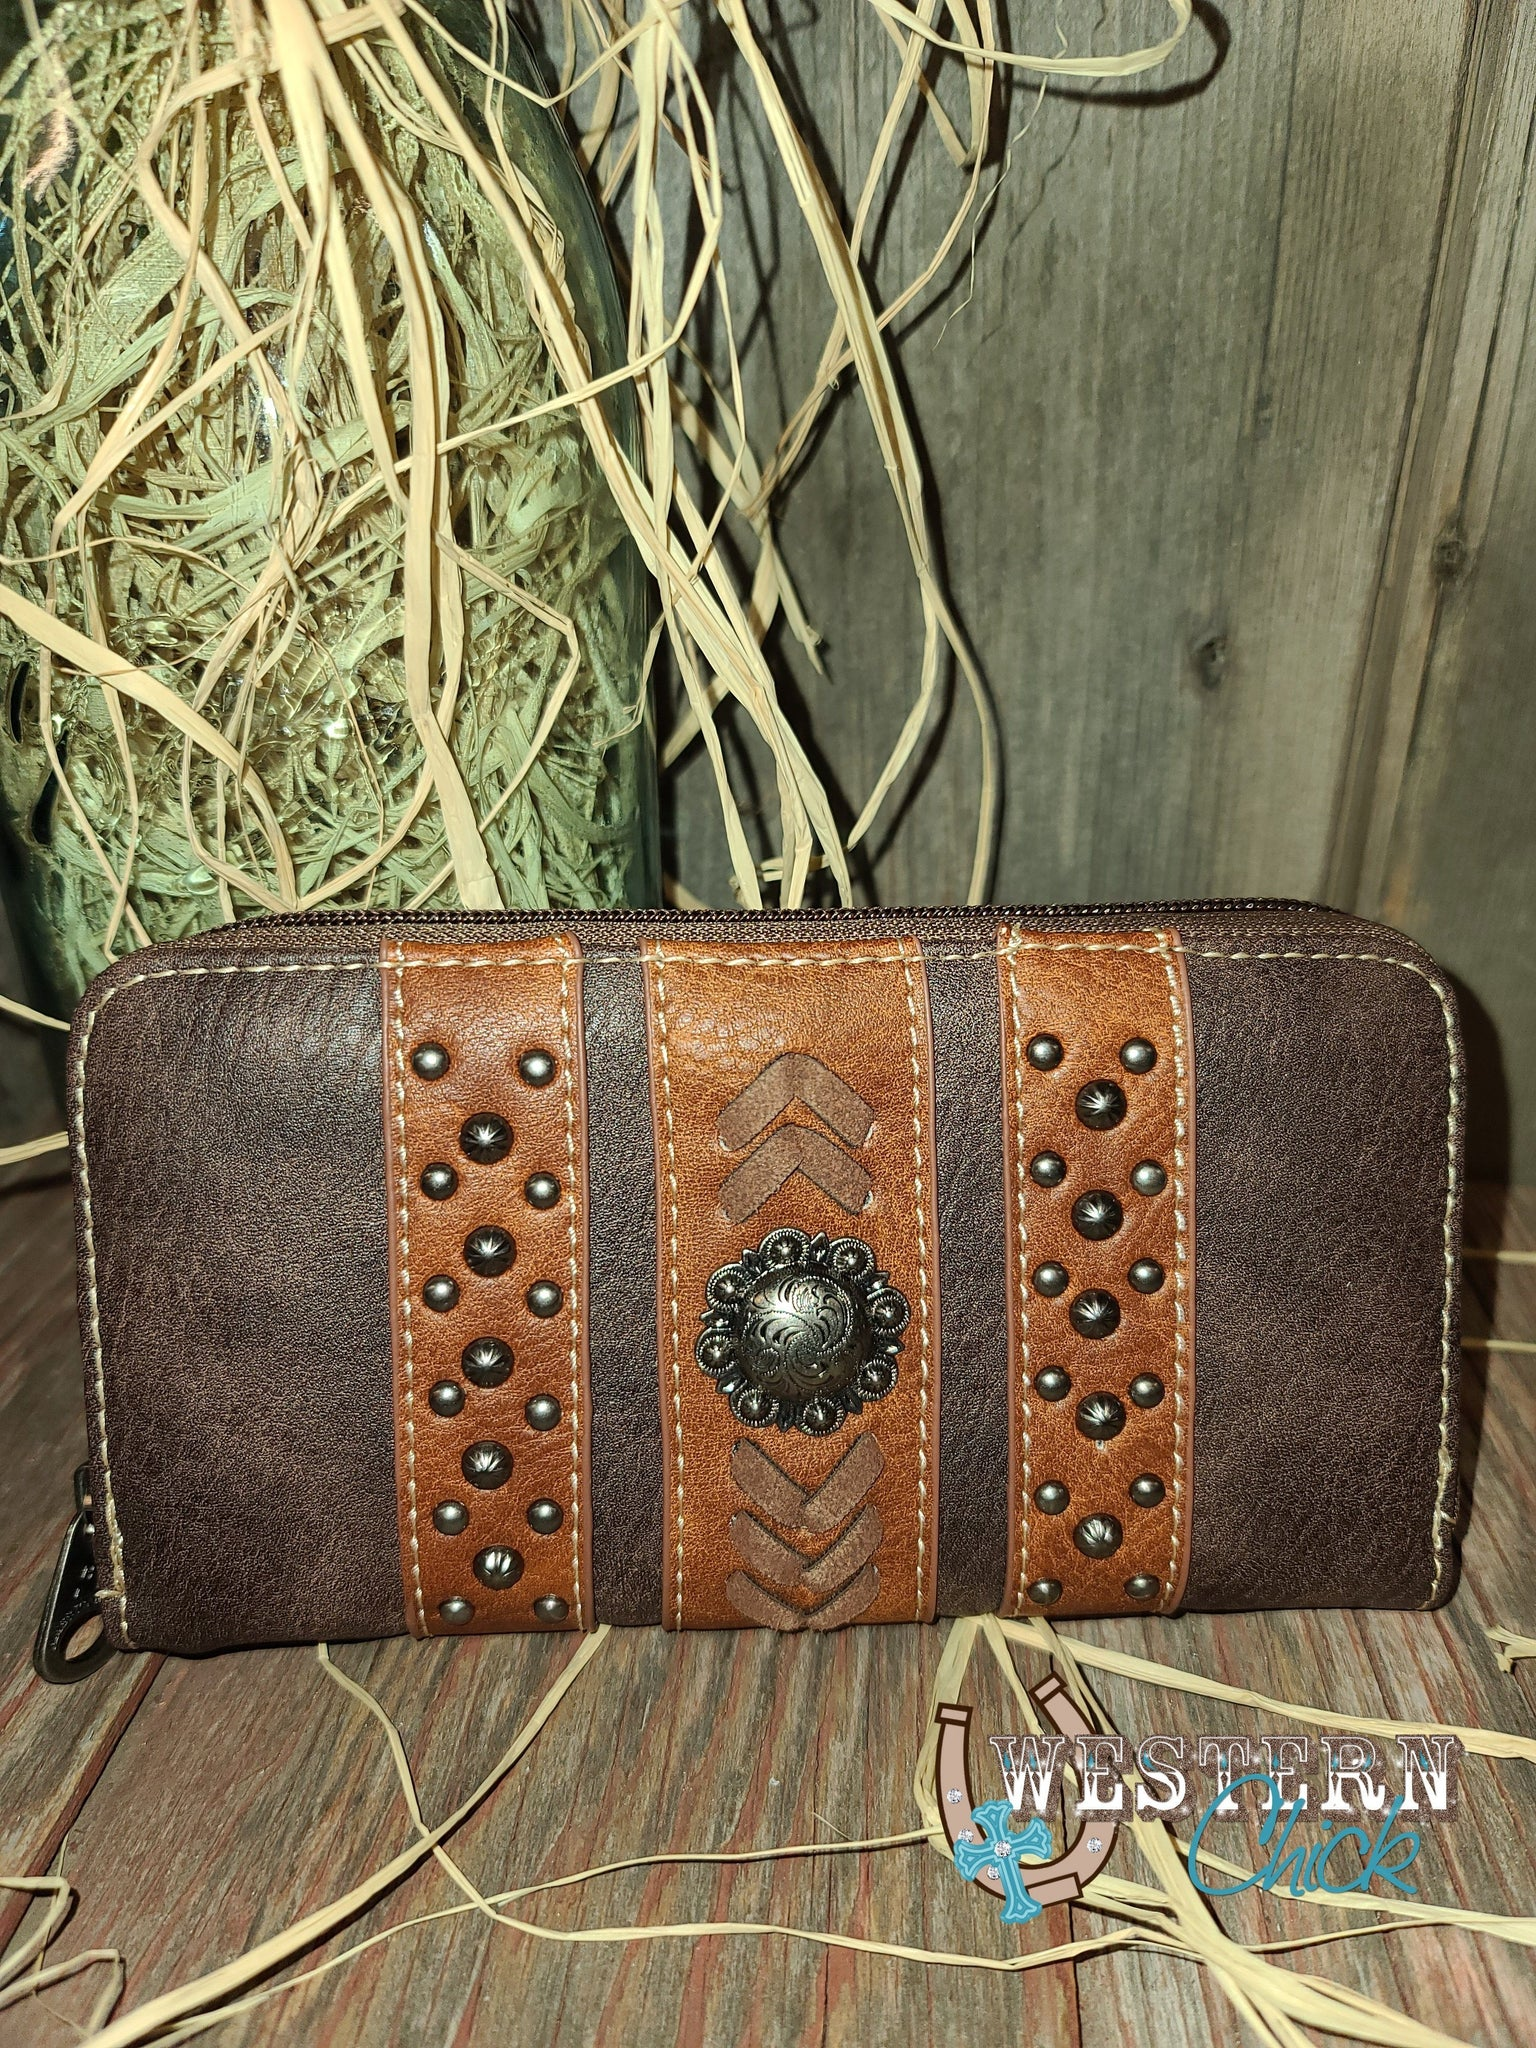 Salty's Western Wallet Wristlet - Coffee Wallet Montana West